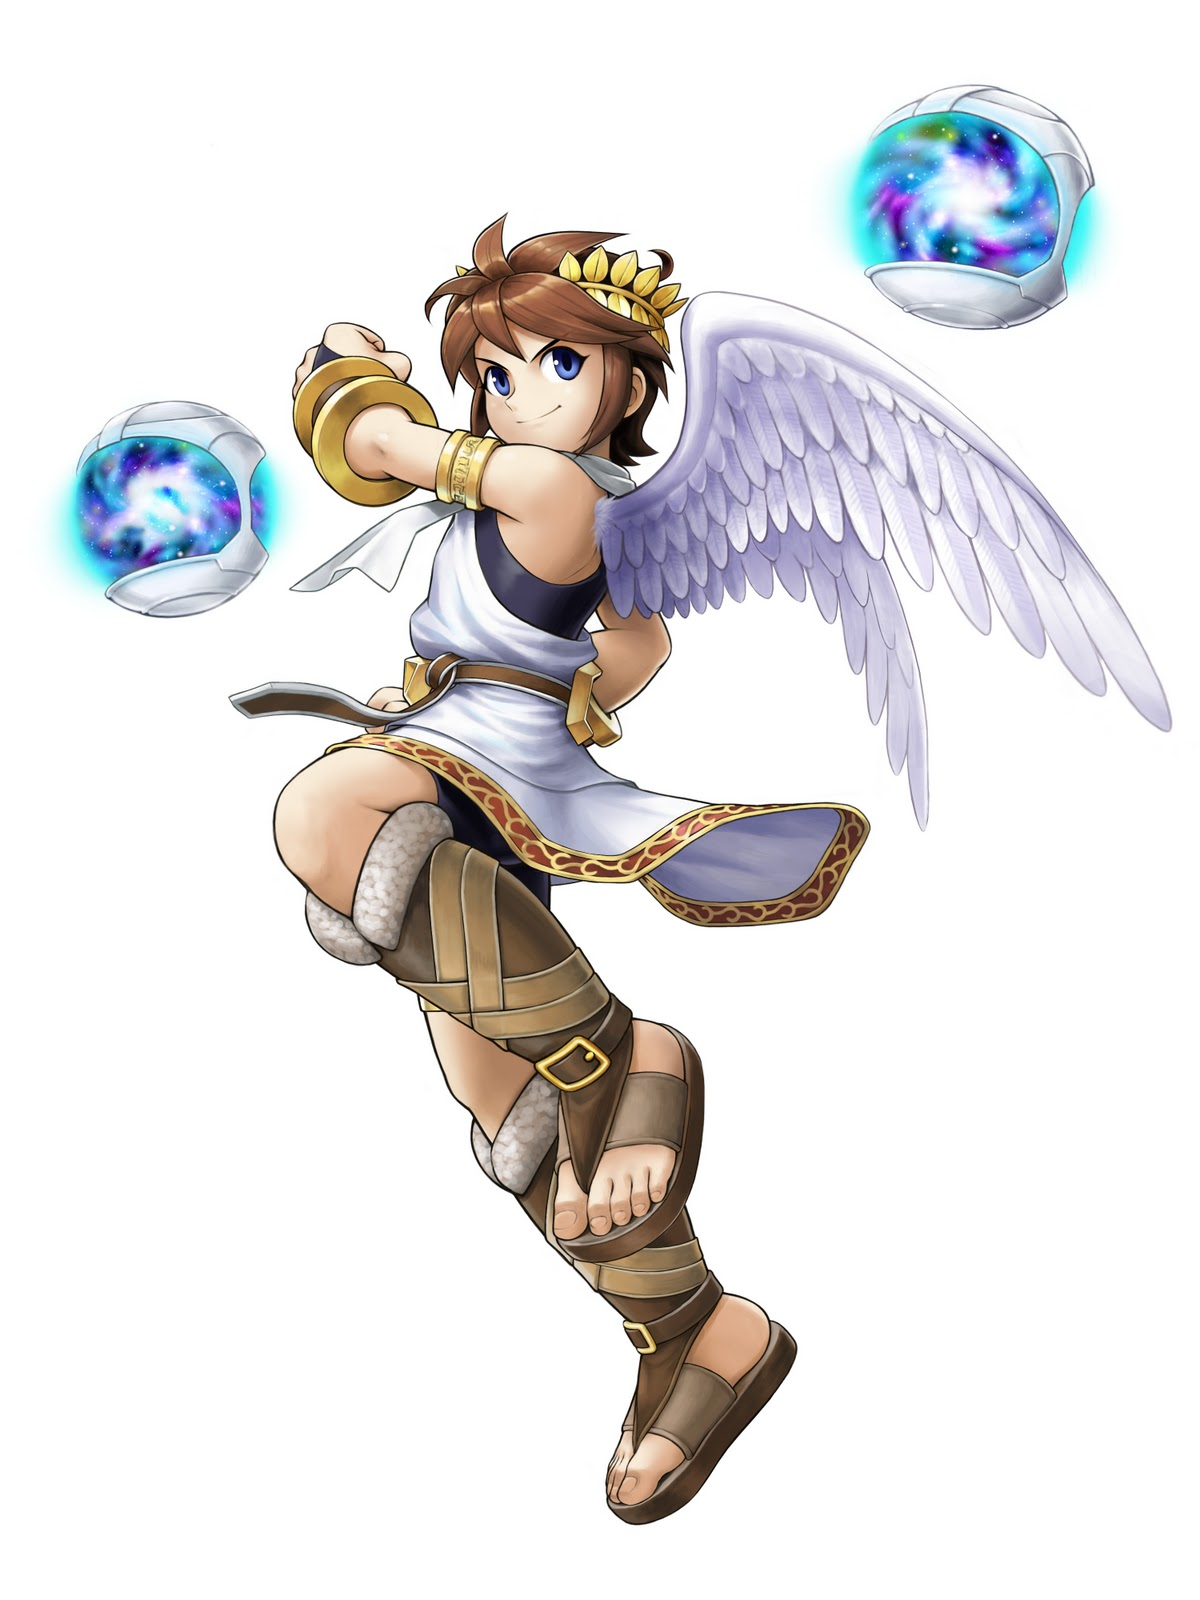 Kid Icarus HD & Widescreen Wallpaper 0.0294585723147724